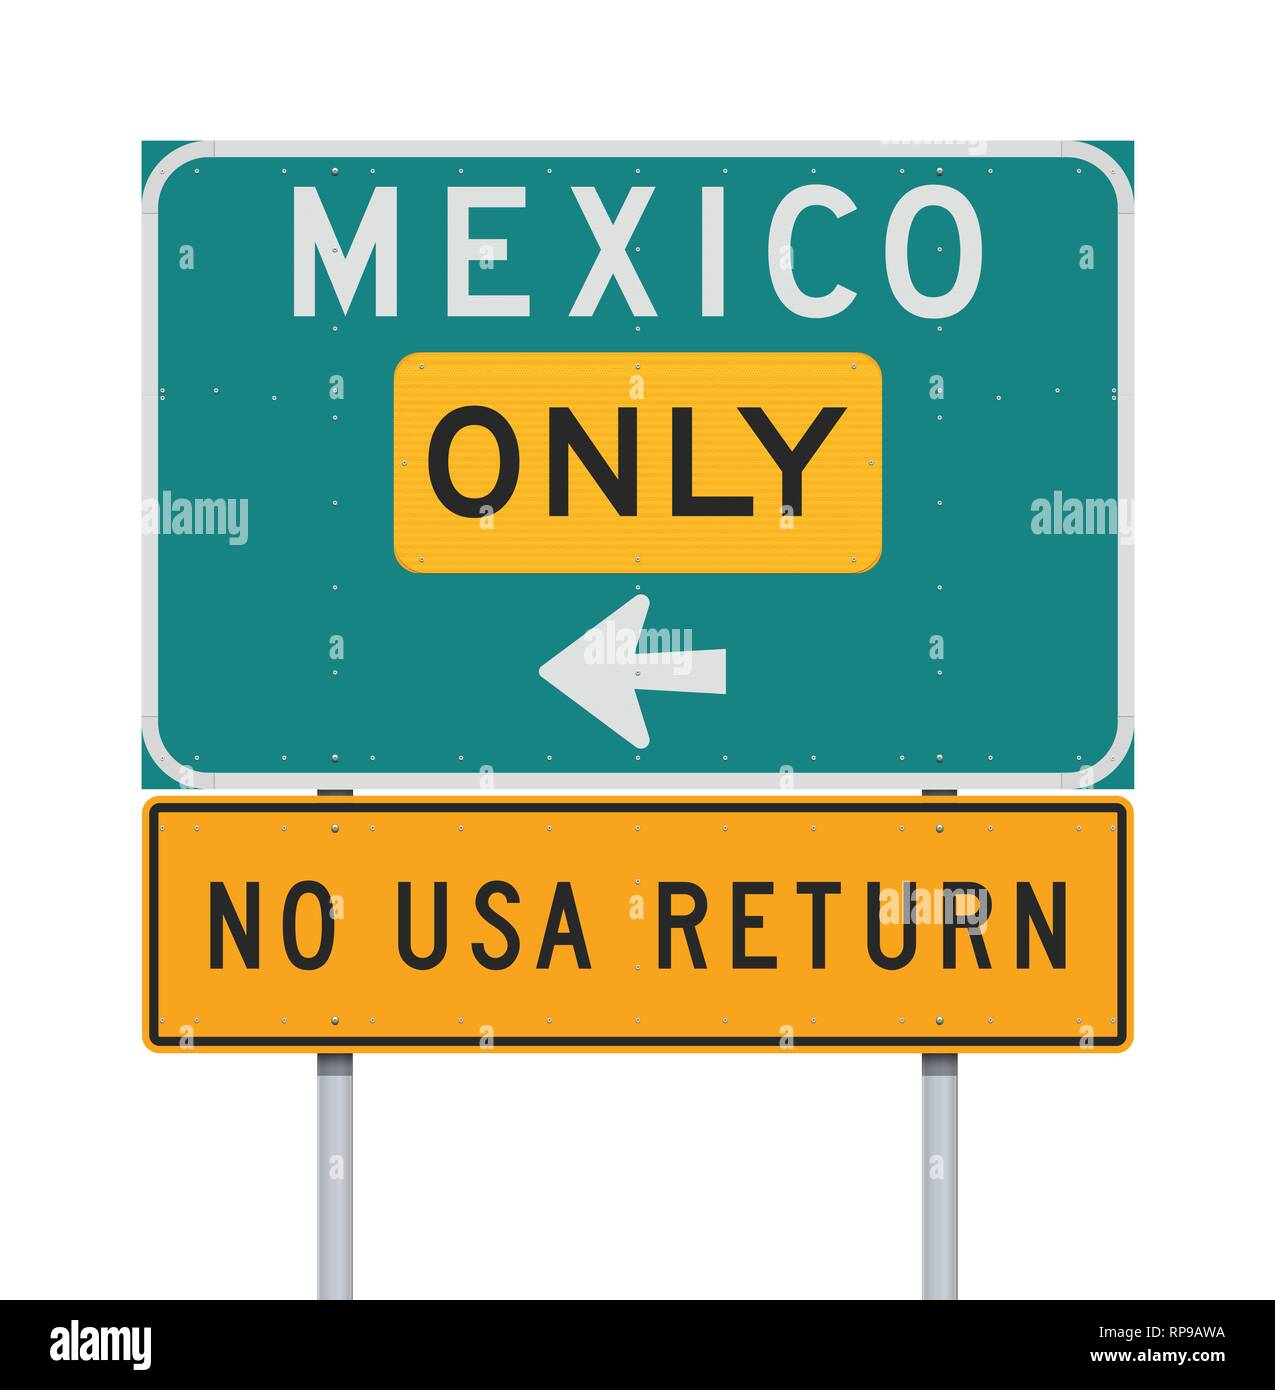 Vector illustration of the Mexico only No USA return road sign - Stock Image